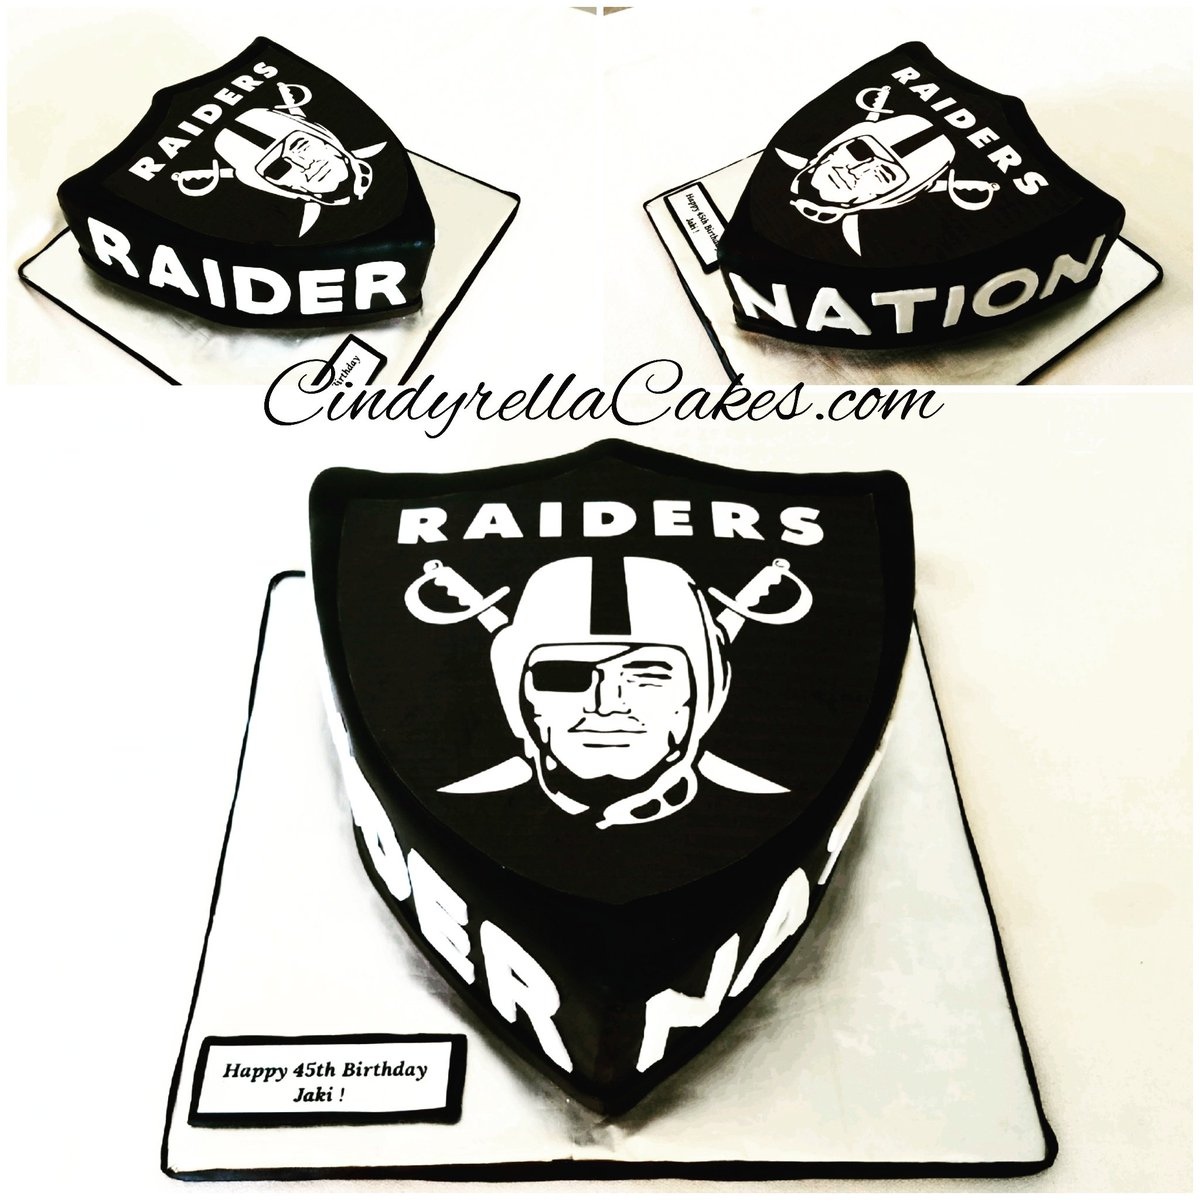 Cindyrella Cakes On Twitter Raiders Fan Birthday Cake Cindyrellacakes Truefan Raiders Raidernation Football Raider Nation Birthdaycake Raiderfam Cake Cakes Https T Co Pgrb2qunm6